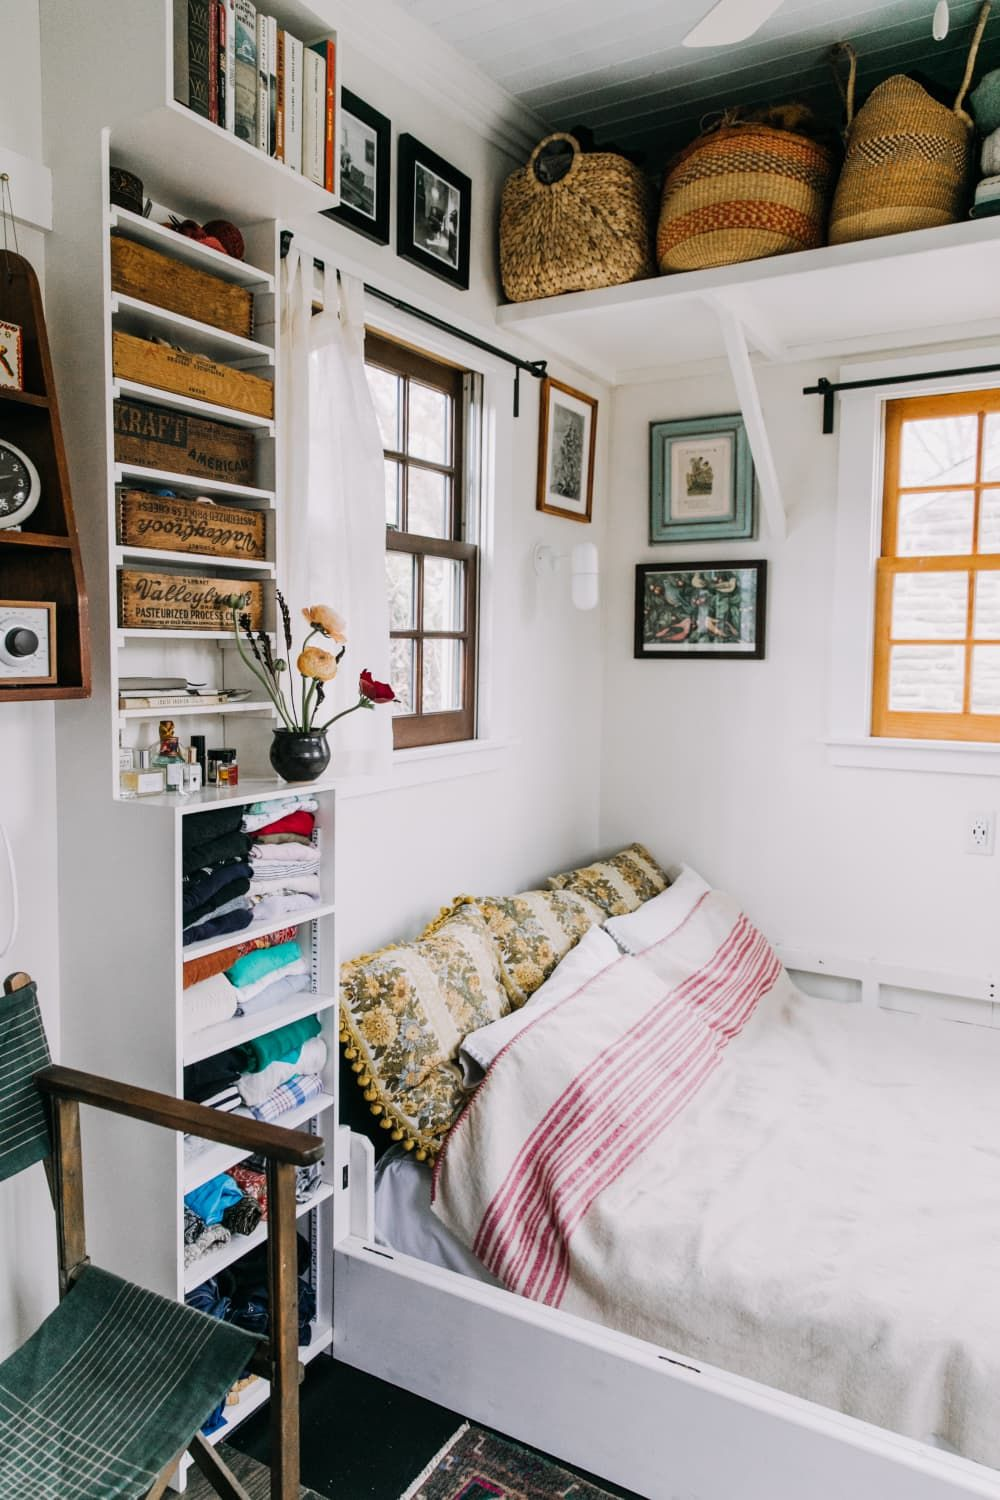 The Smartest Small Space Storage Ideas We Saw In 2018 Small Bedroom Ideas For Couples Couples Apartment Decor Small Bedroom Storage